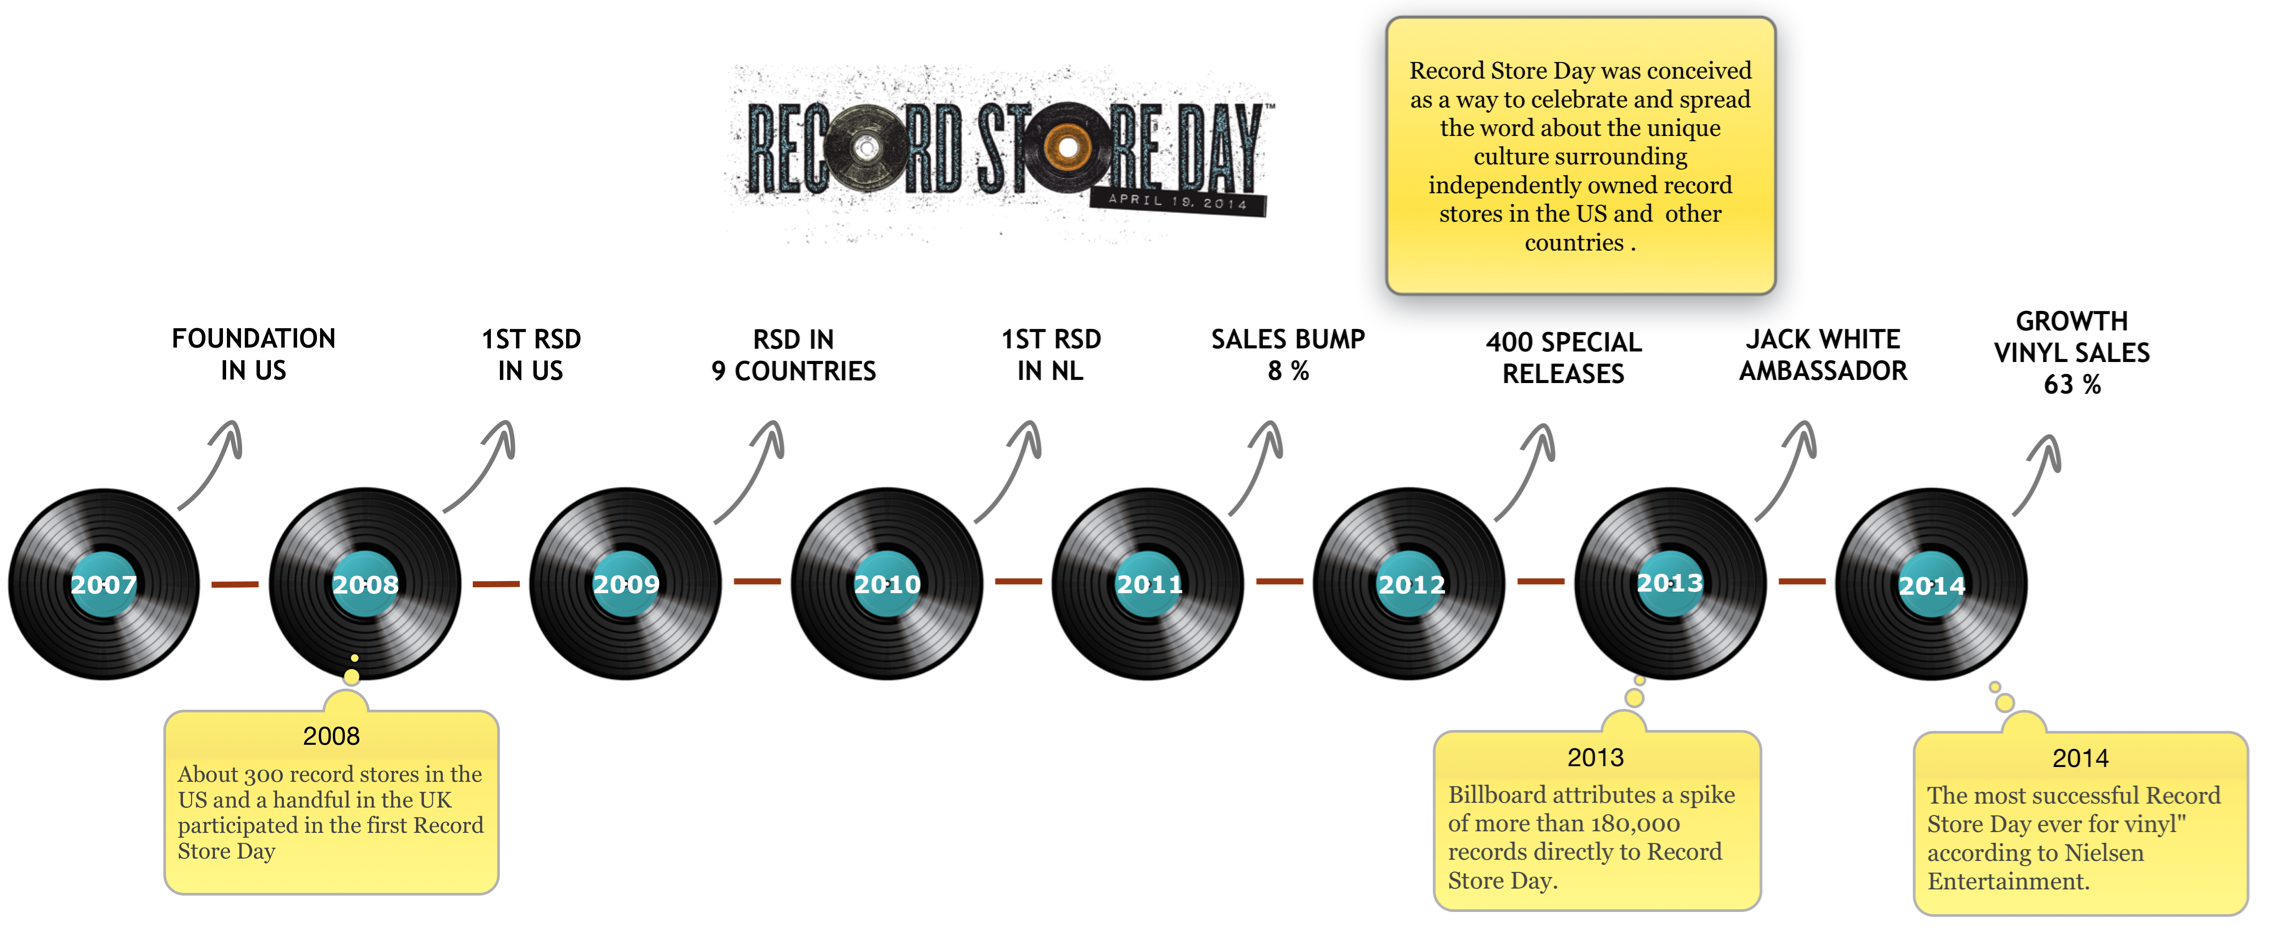 The story of Record Store Day | mastermindmaps